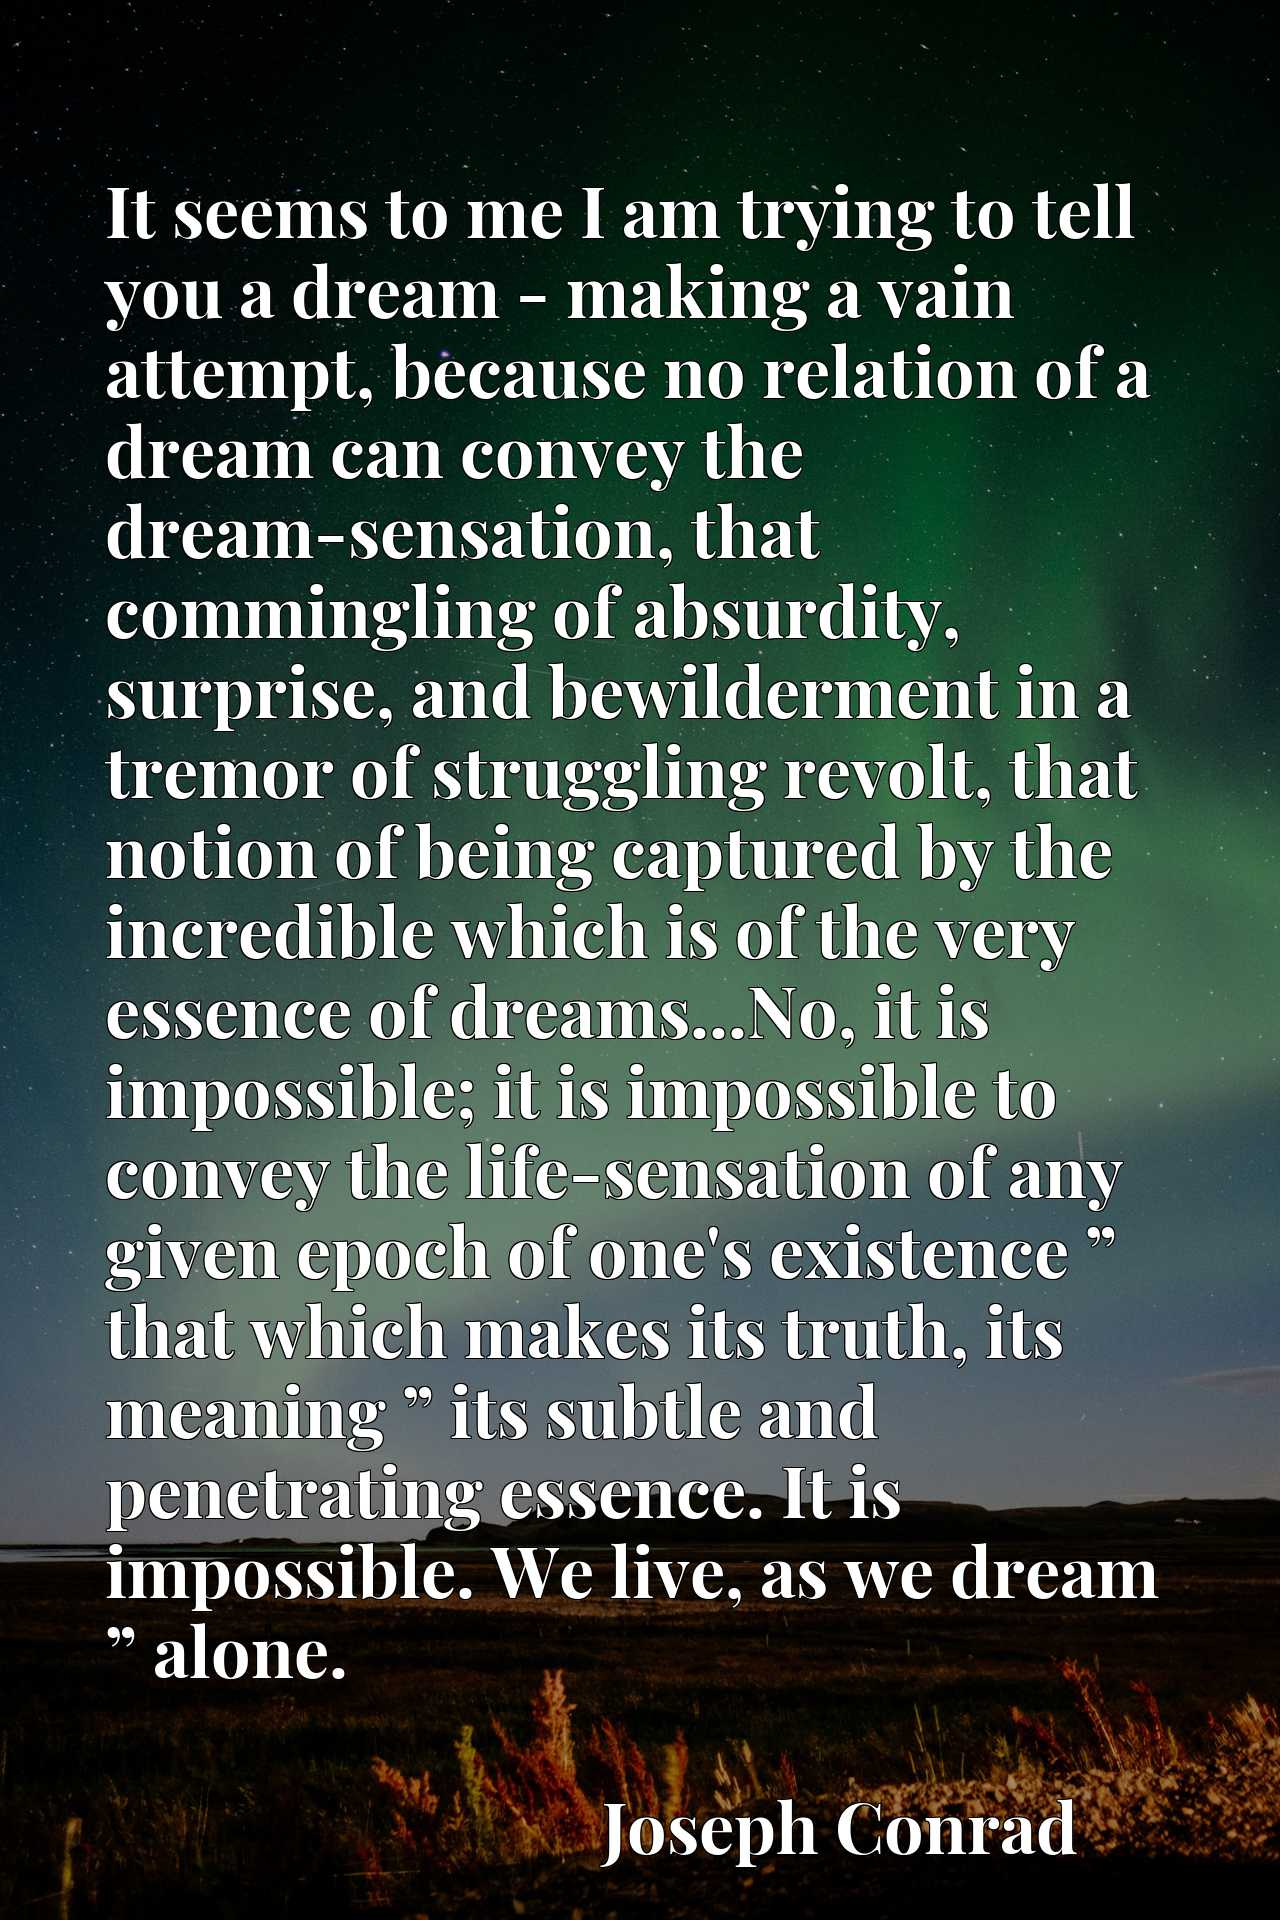 """It seems to me I am trying to tell you a dream - making a vain attempt, because no relation of a dream can convey the dream-sensation, that commingling of absurdity, surprise, and bewilderment in a tremor of struggling revolt, that notion of being captured by the incredible which is of the very essence of dreams...No, it is impossible; it is impossible to convey the life-sensation of any given epoch of one's existence """" that which makes its truth, its meaning """" its subtle and penetrating essence. It is impossible. We live, as we dream """" alone."""